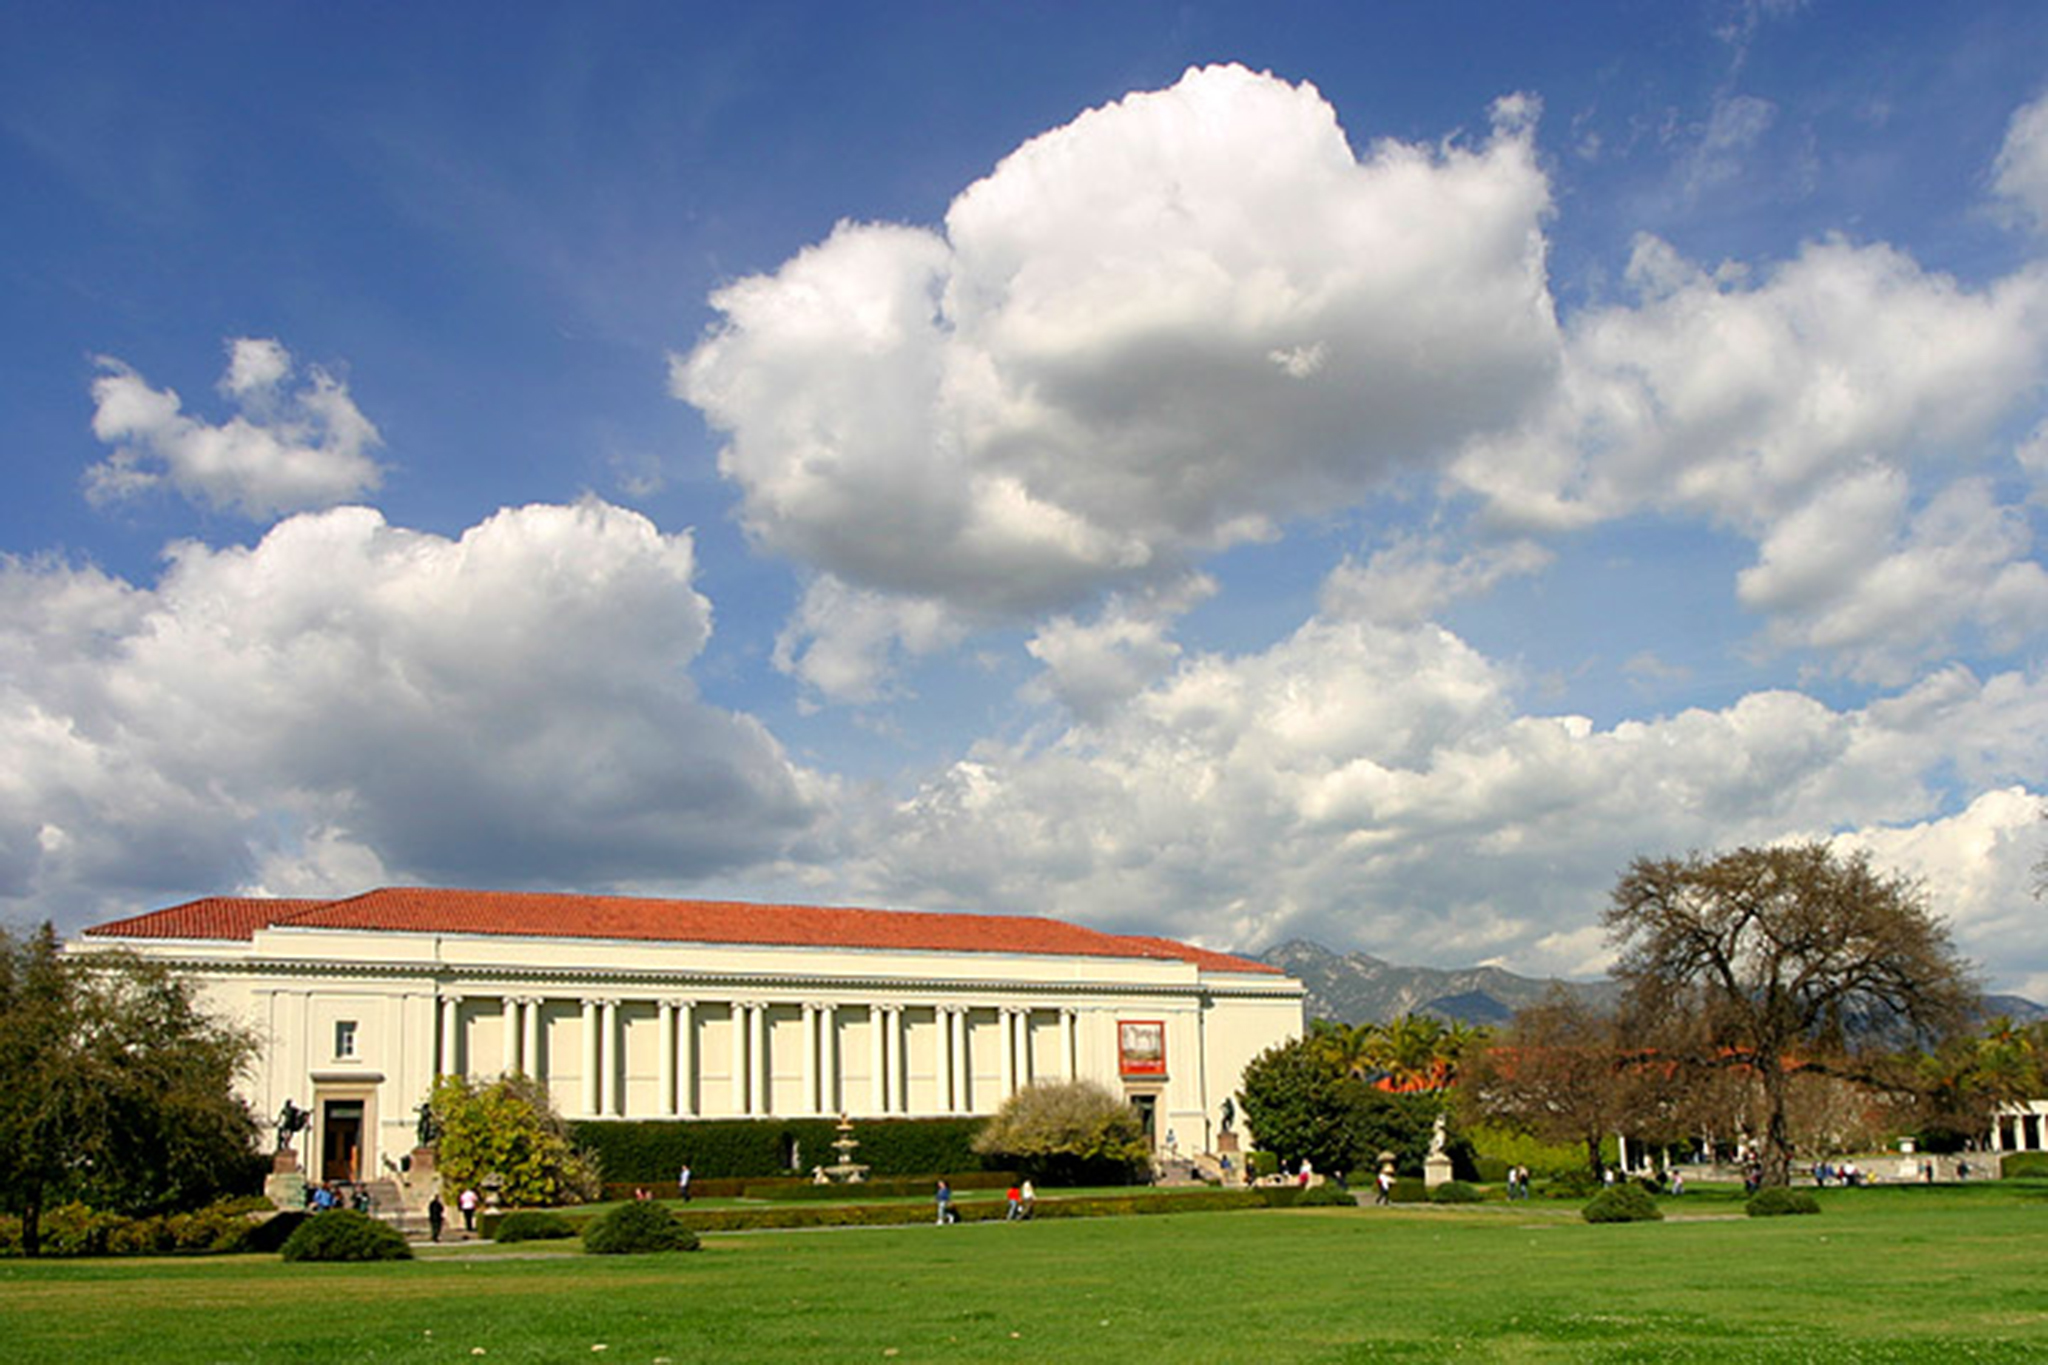 Huntington Library, Art Collections & Botanical Gardens